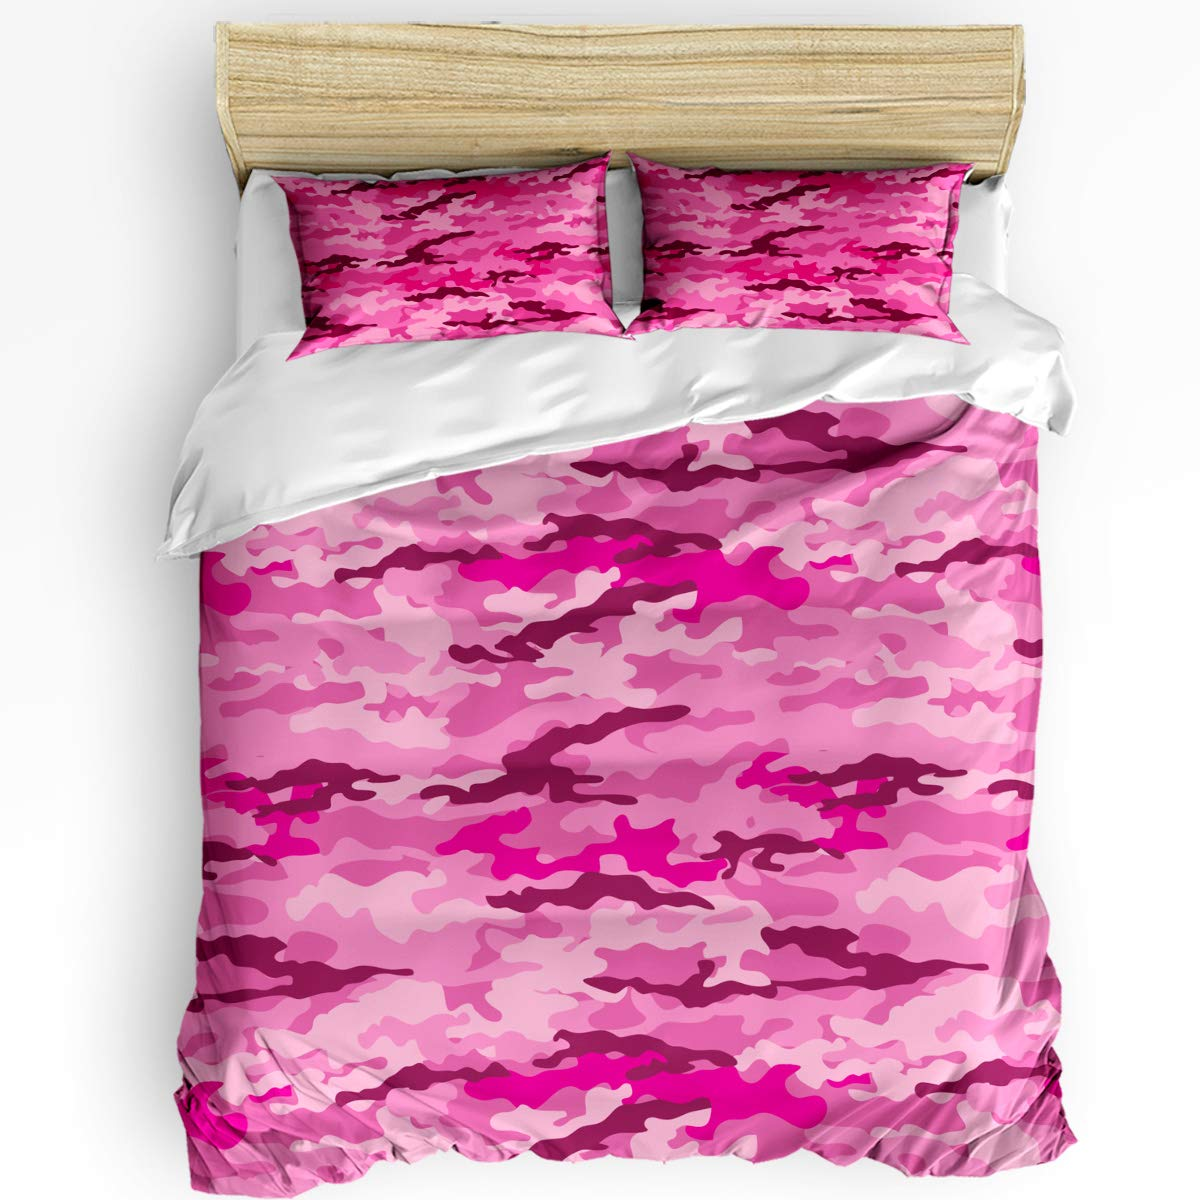 Real Sweet 3Pieces Home Comforter Bedding Sets Camouflage Netting Camo Pink Bedspread Bed Sheet for Adult Kids,Flat Sheet,Pillow Shams Set Twin Size